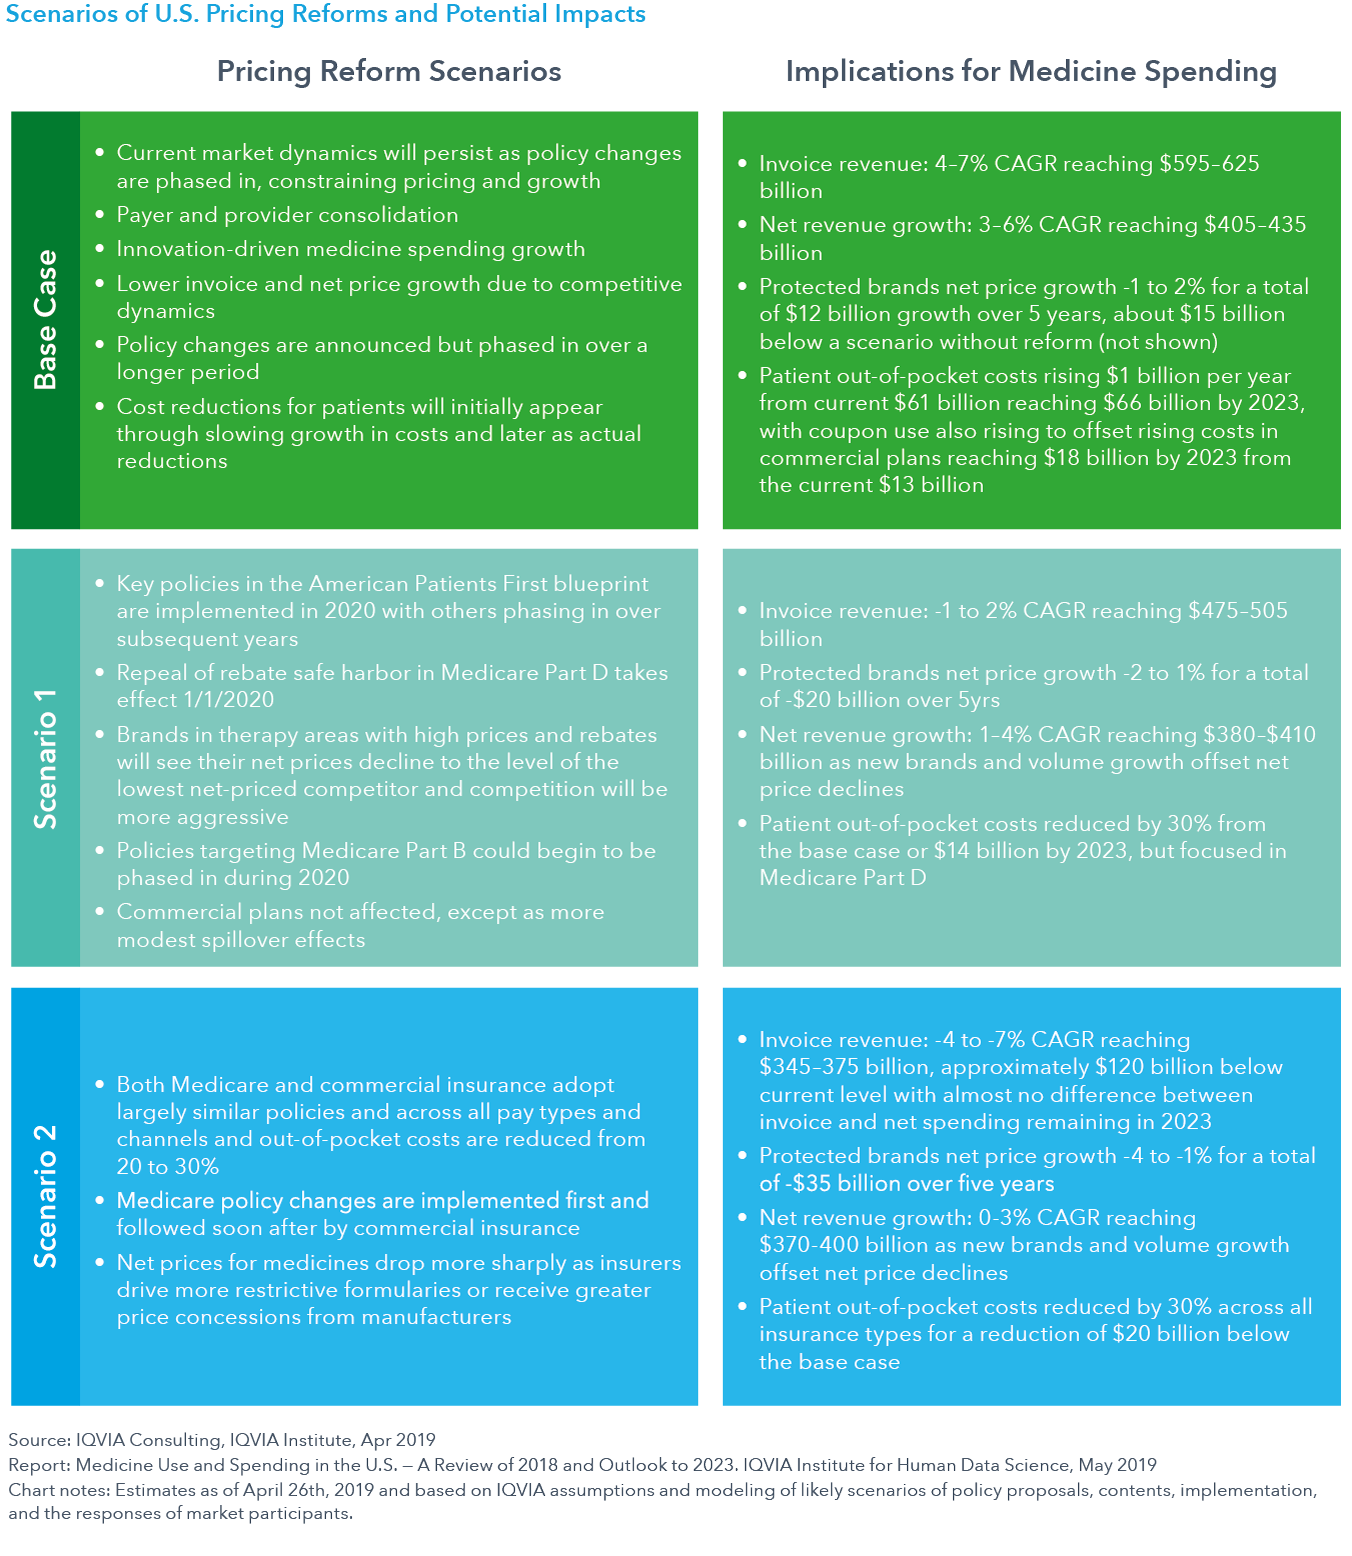 Chart 34 Scenarios of US Pricing Reforms and Potential Impacts